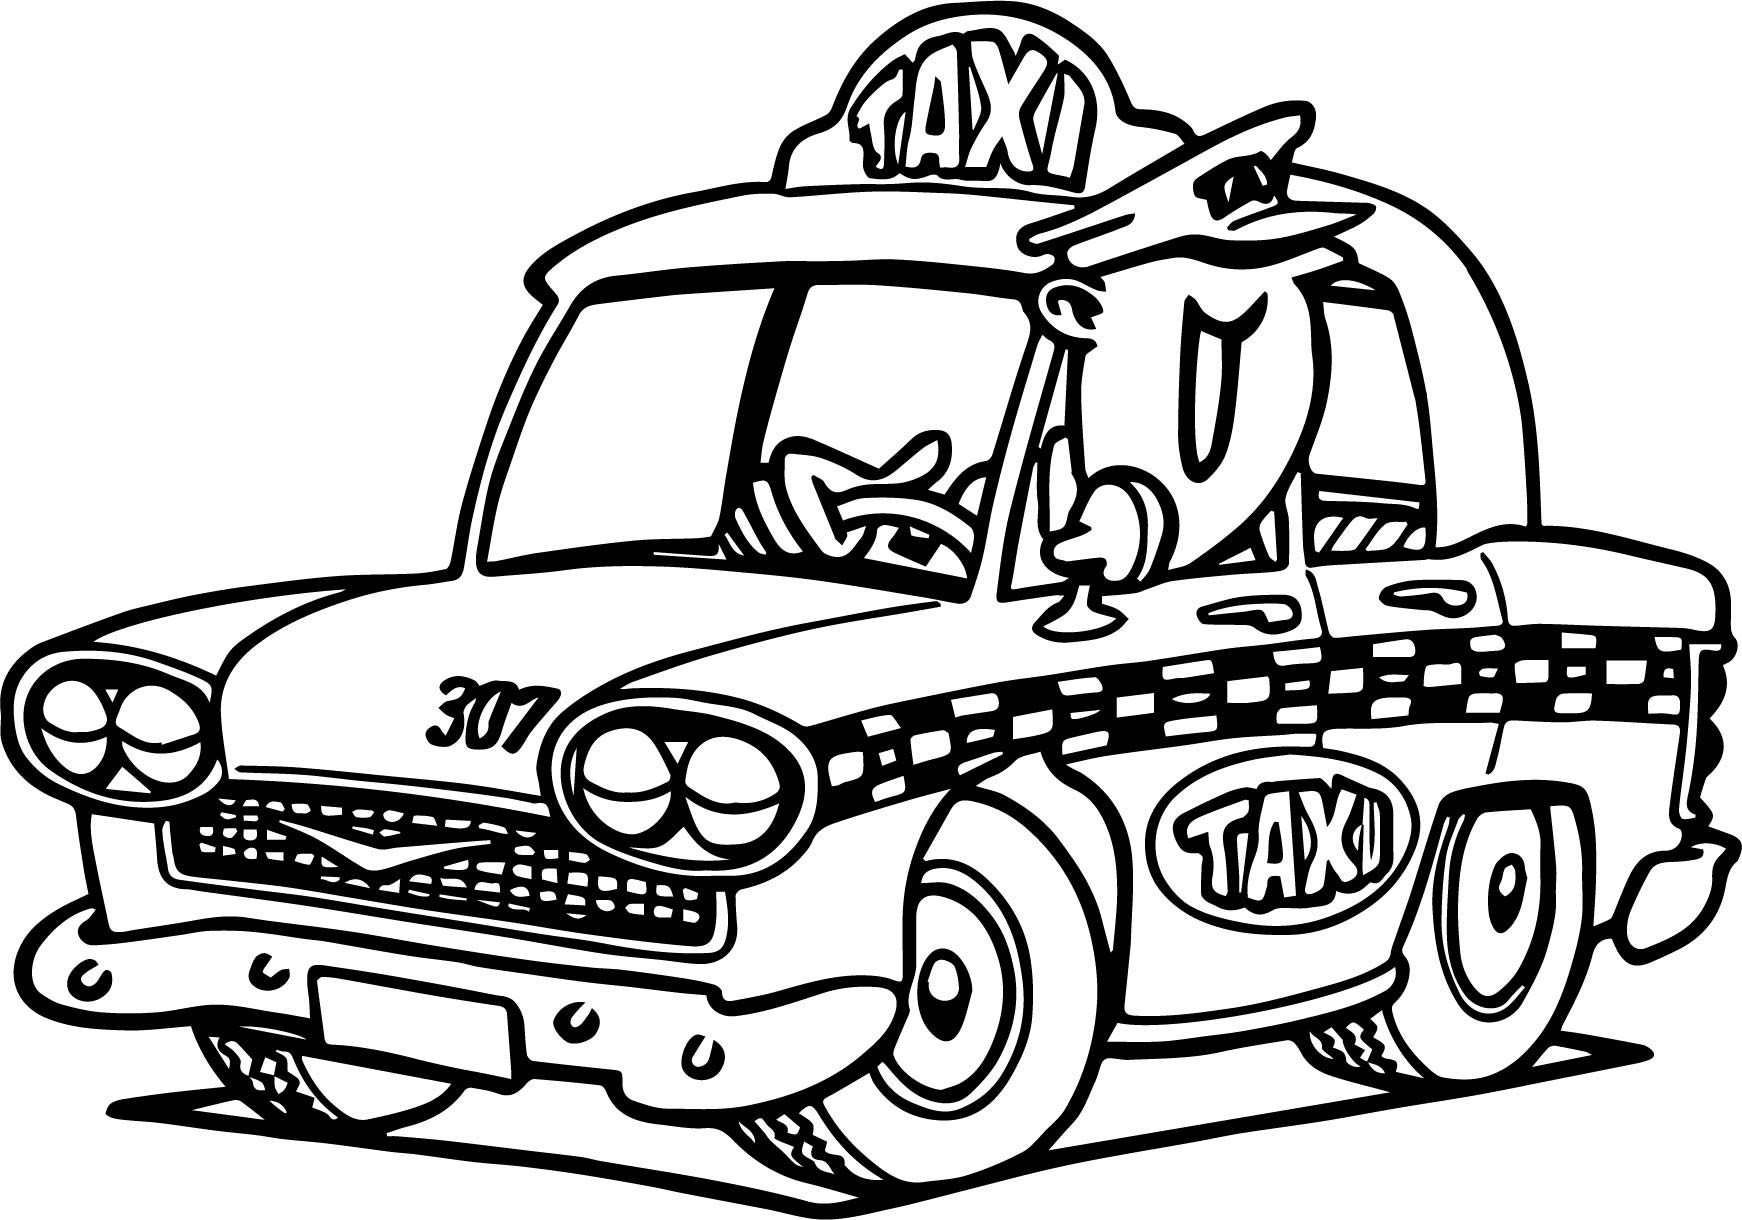 1742x1220 Taxi Transportation Coloring Pages For Kids Awesome Cute